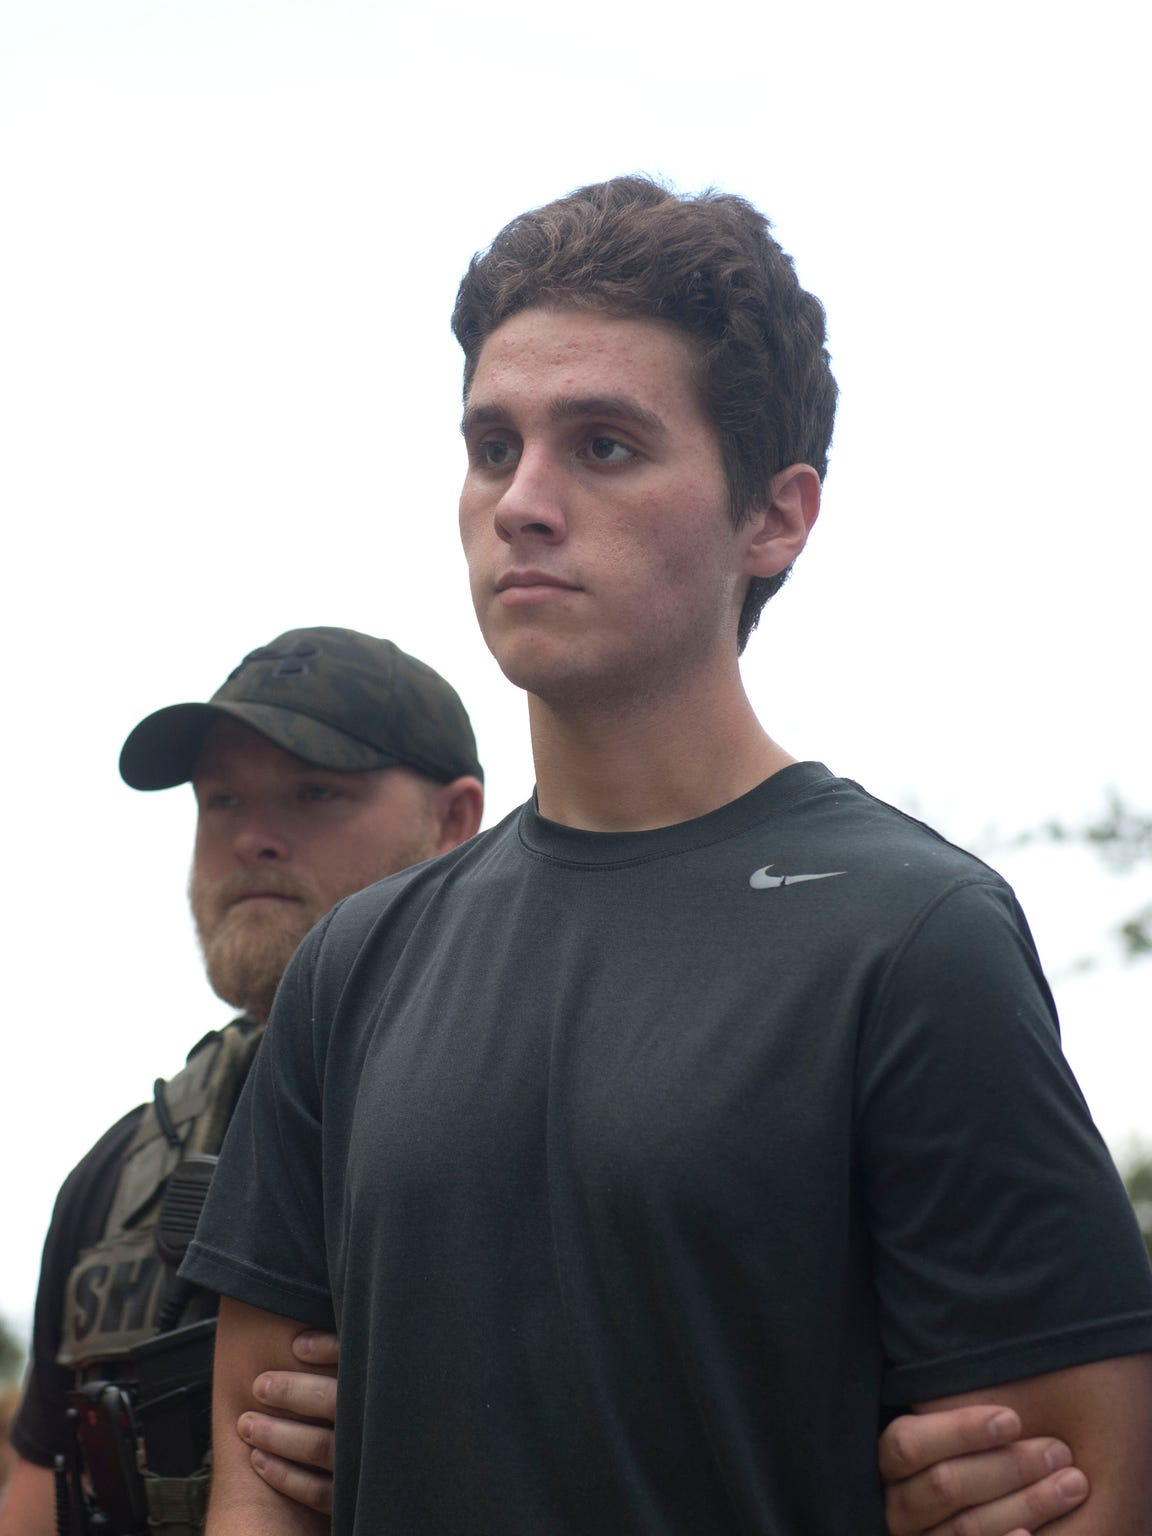 Austin Harrouff arrives at the Martin County Sheriff's